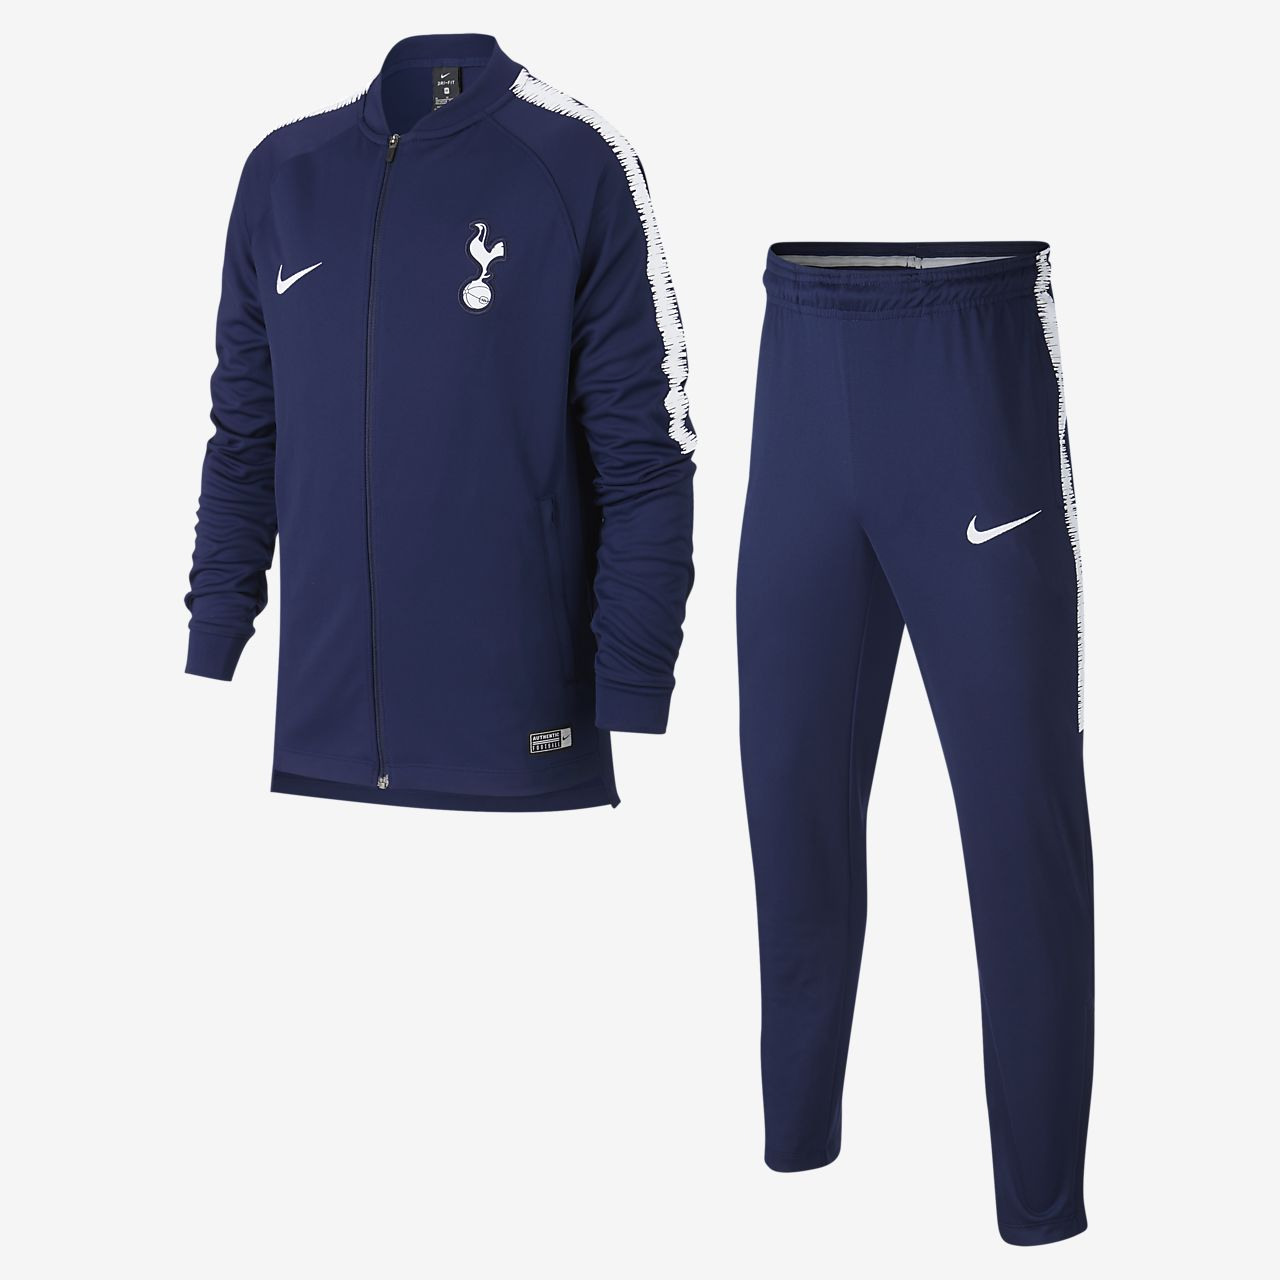 Tottenham Hotspur Dri-FIT Squad Older Kids' Football Track Suit